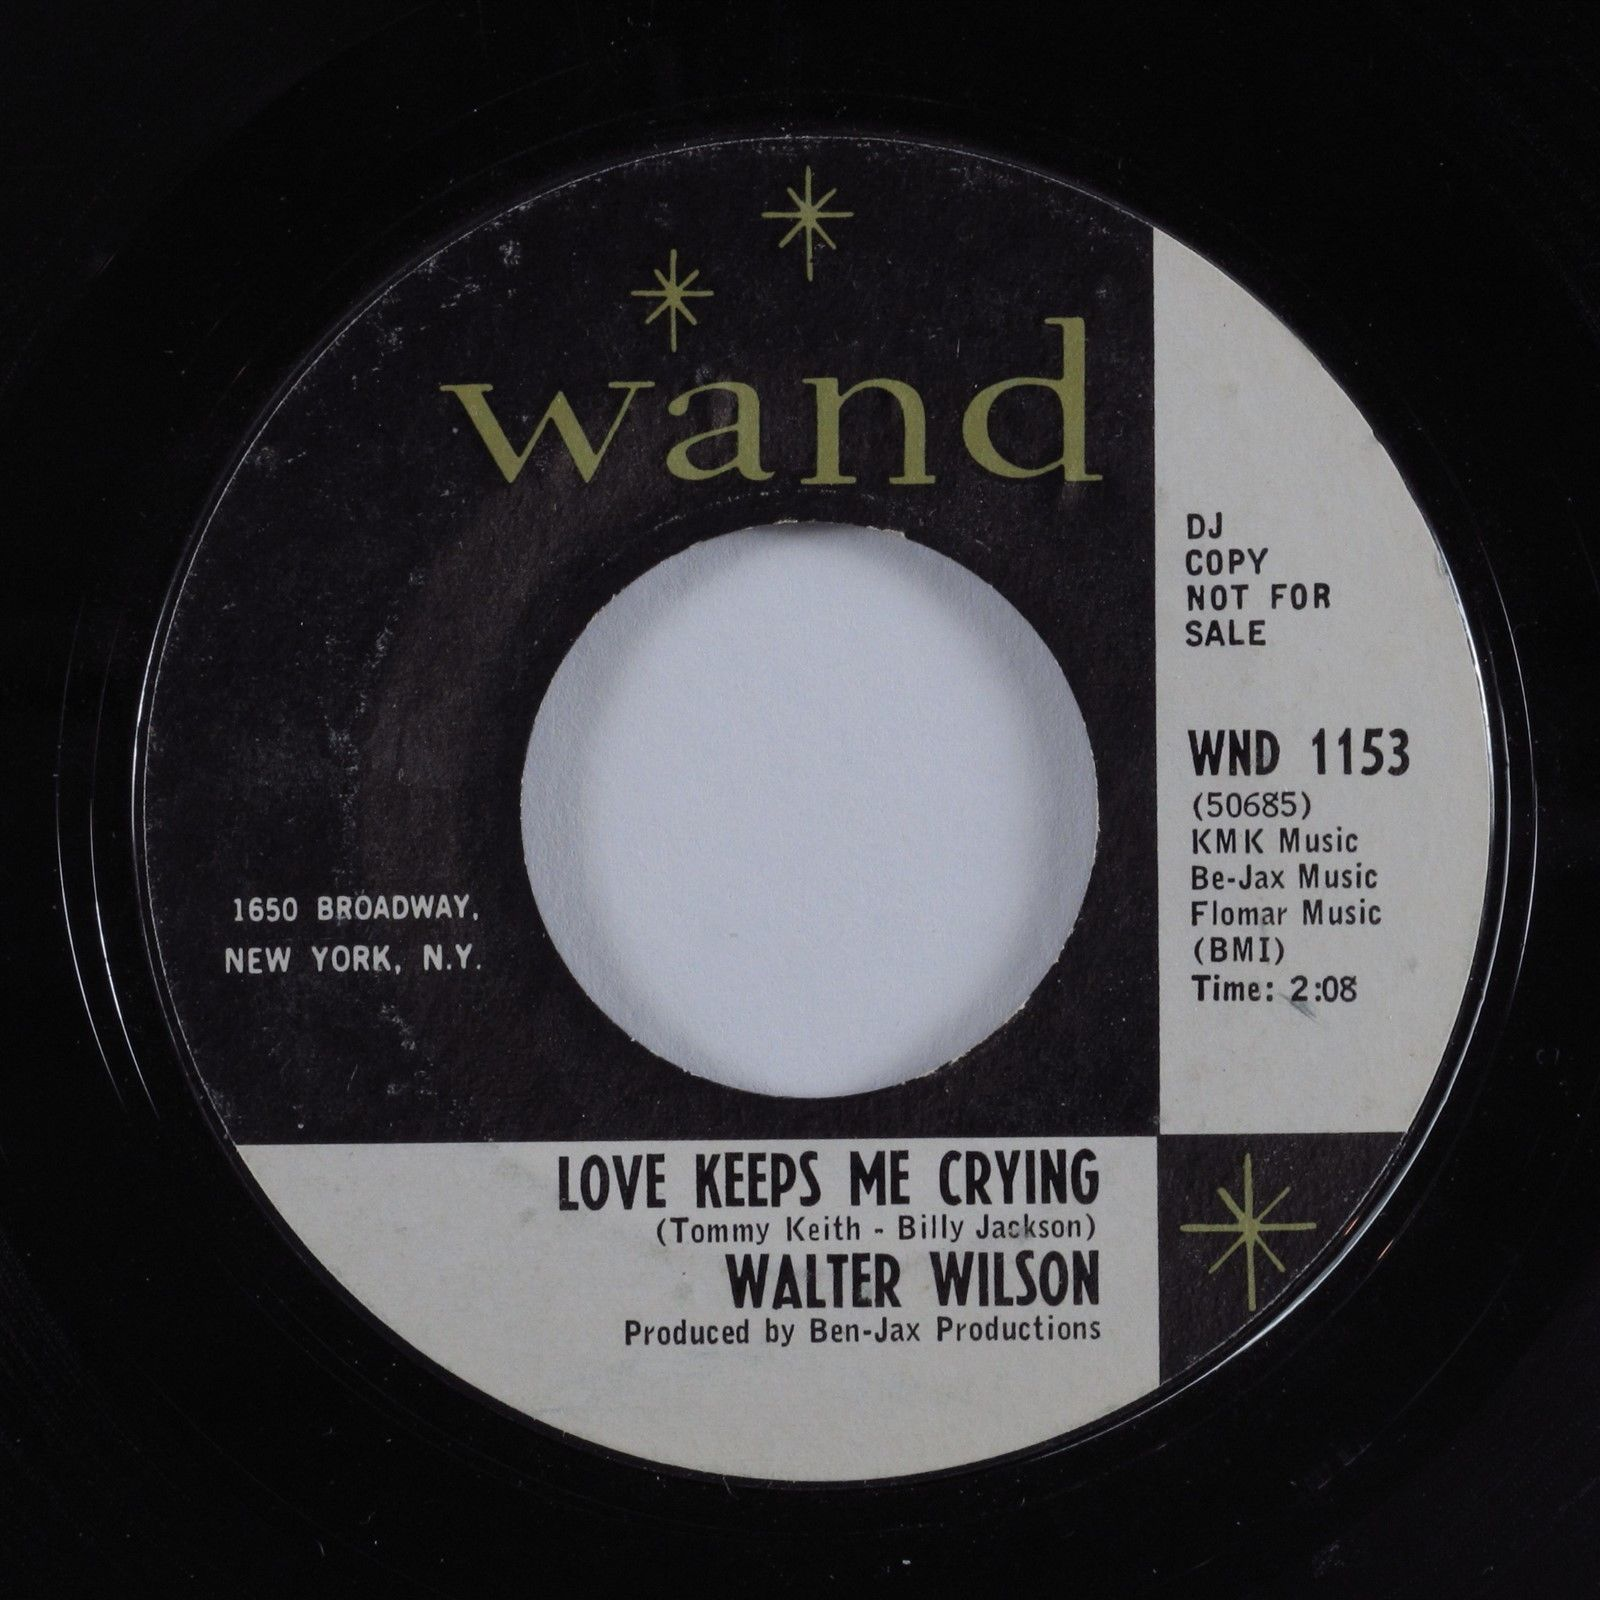 Northern Soul 45 WALTER WILSON Love Keeps Me Crying WAND promo HEAR